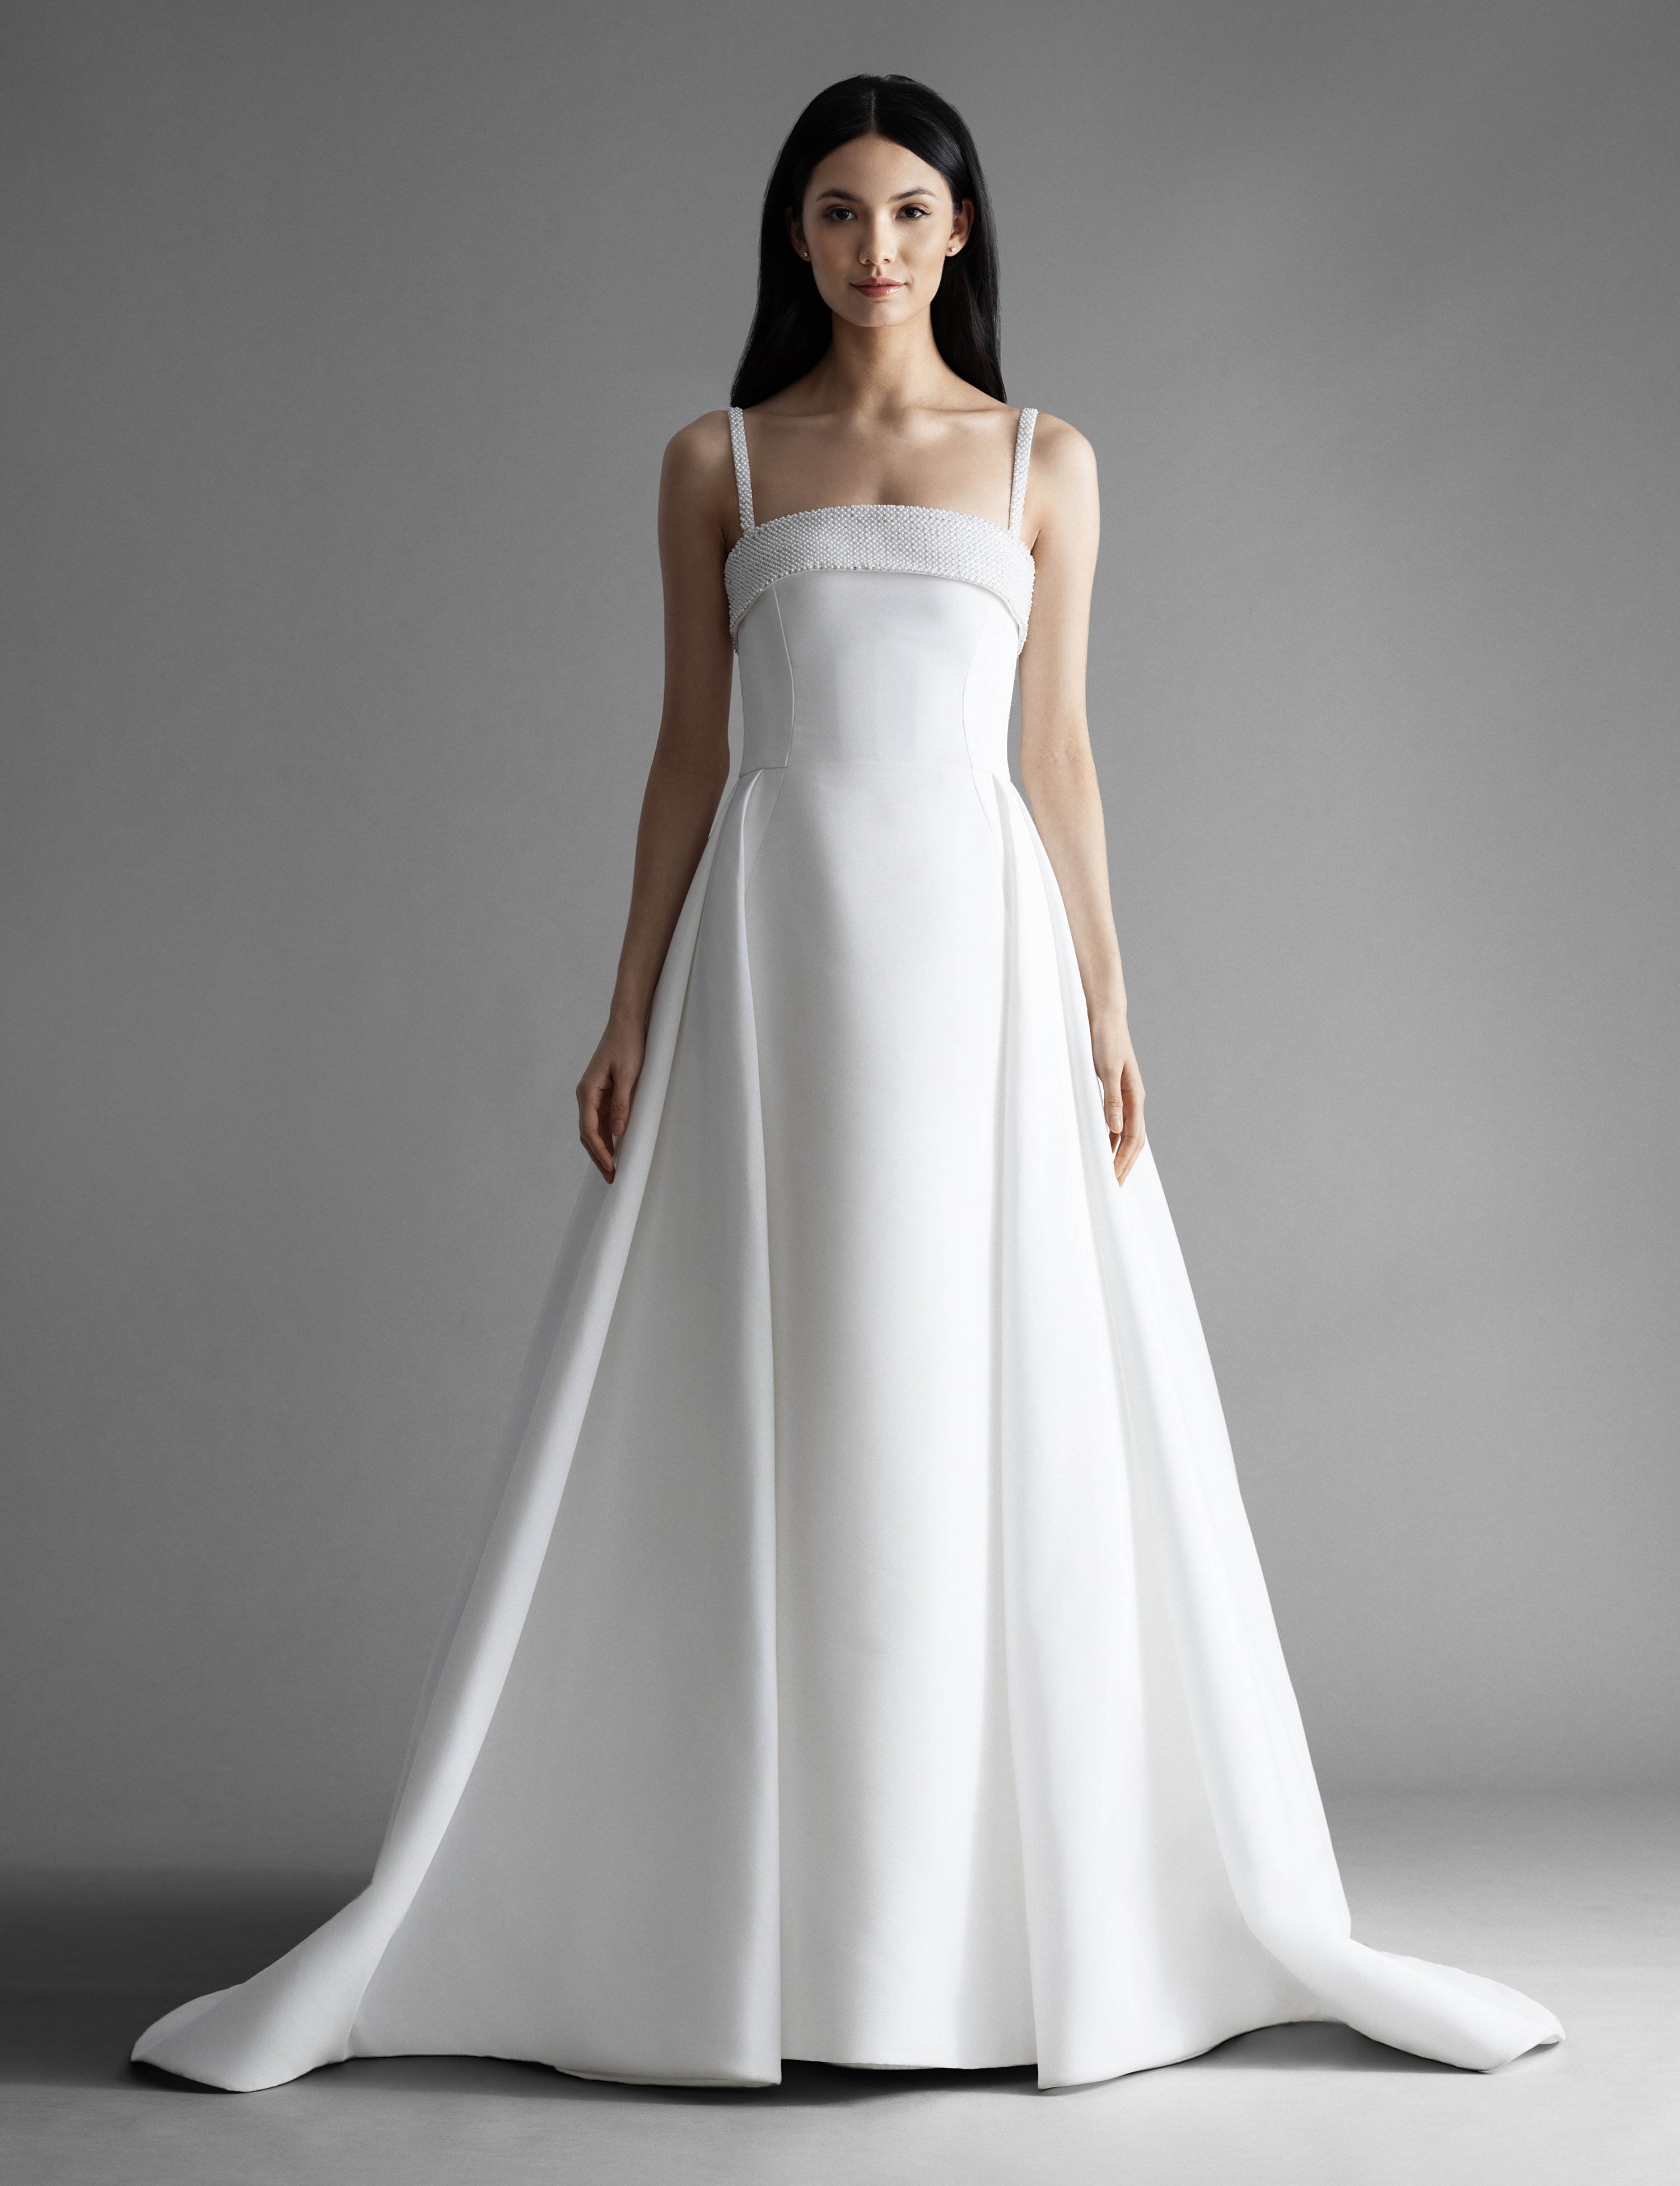 4dfd492126a Bridal Gowns and Wedding Dresses by JLM Couture - Style 4910 Kensington